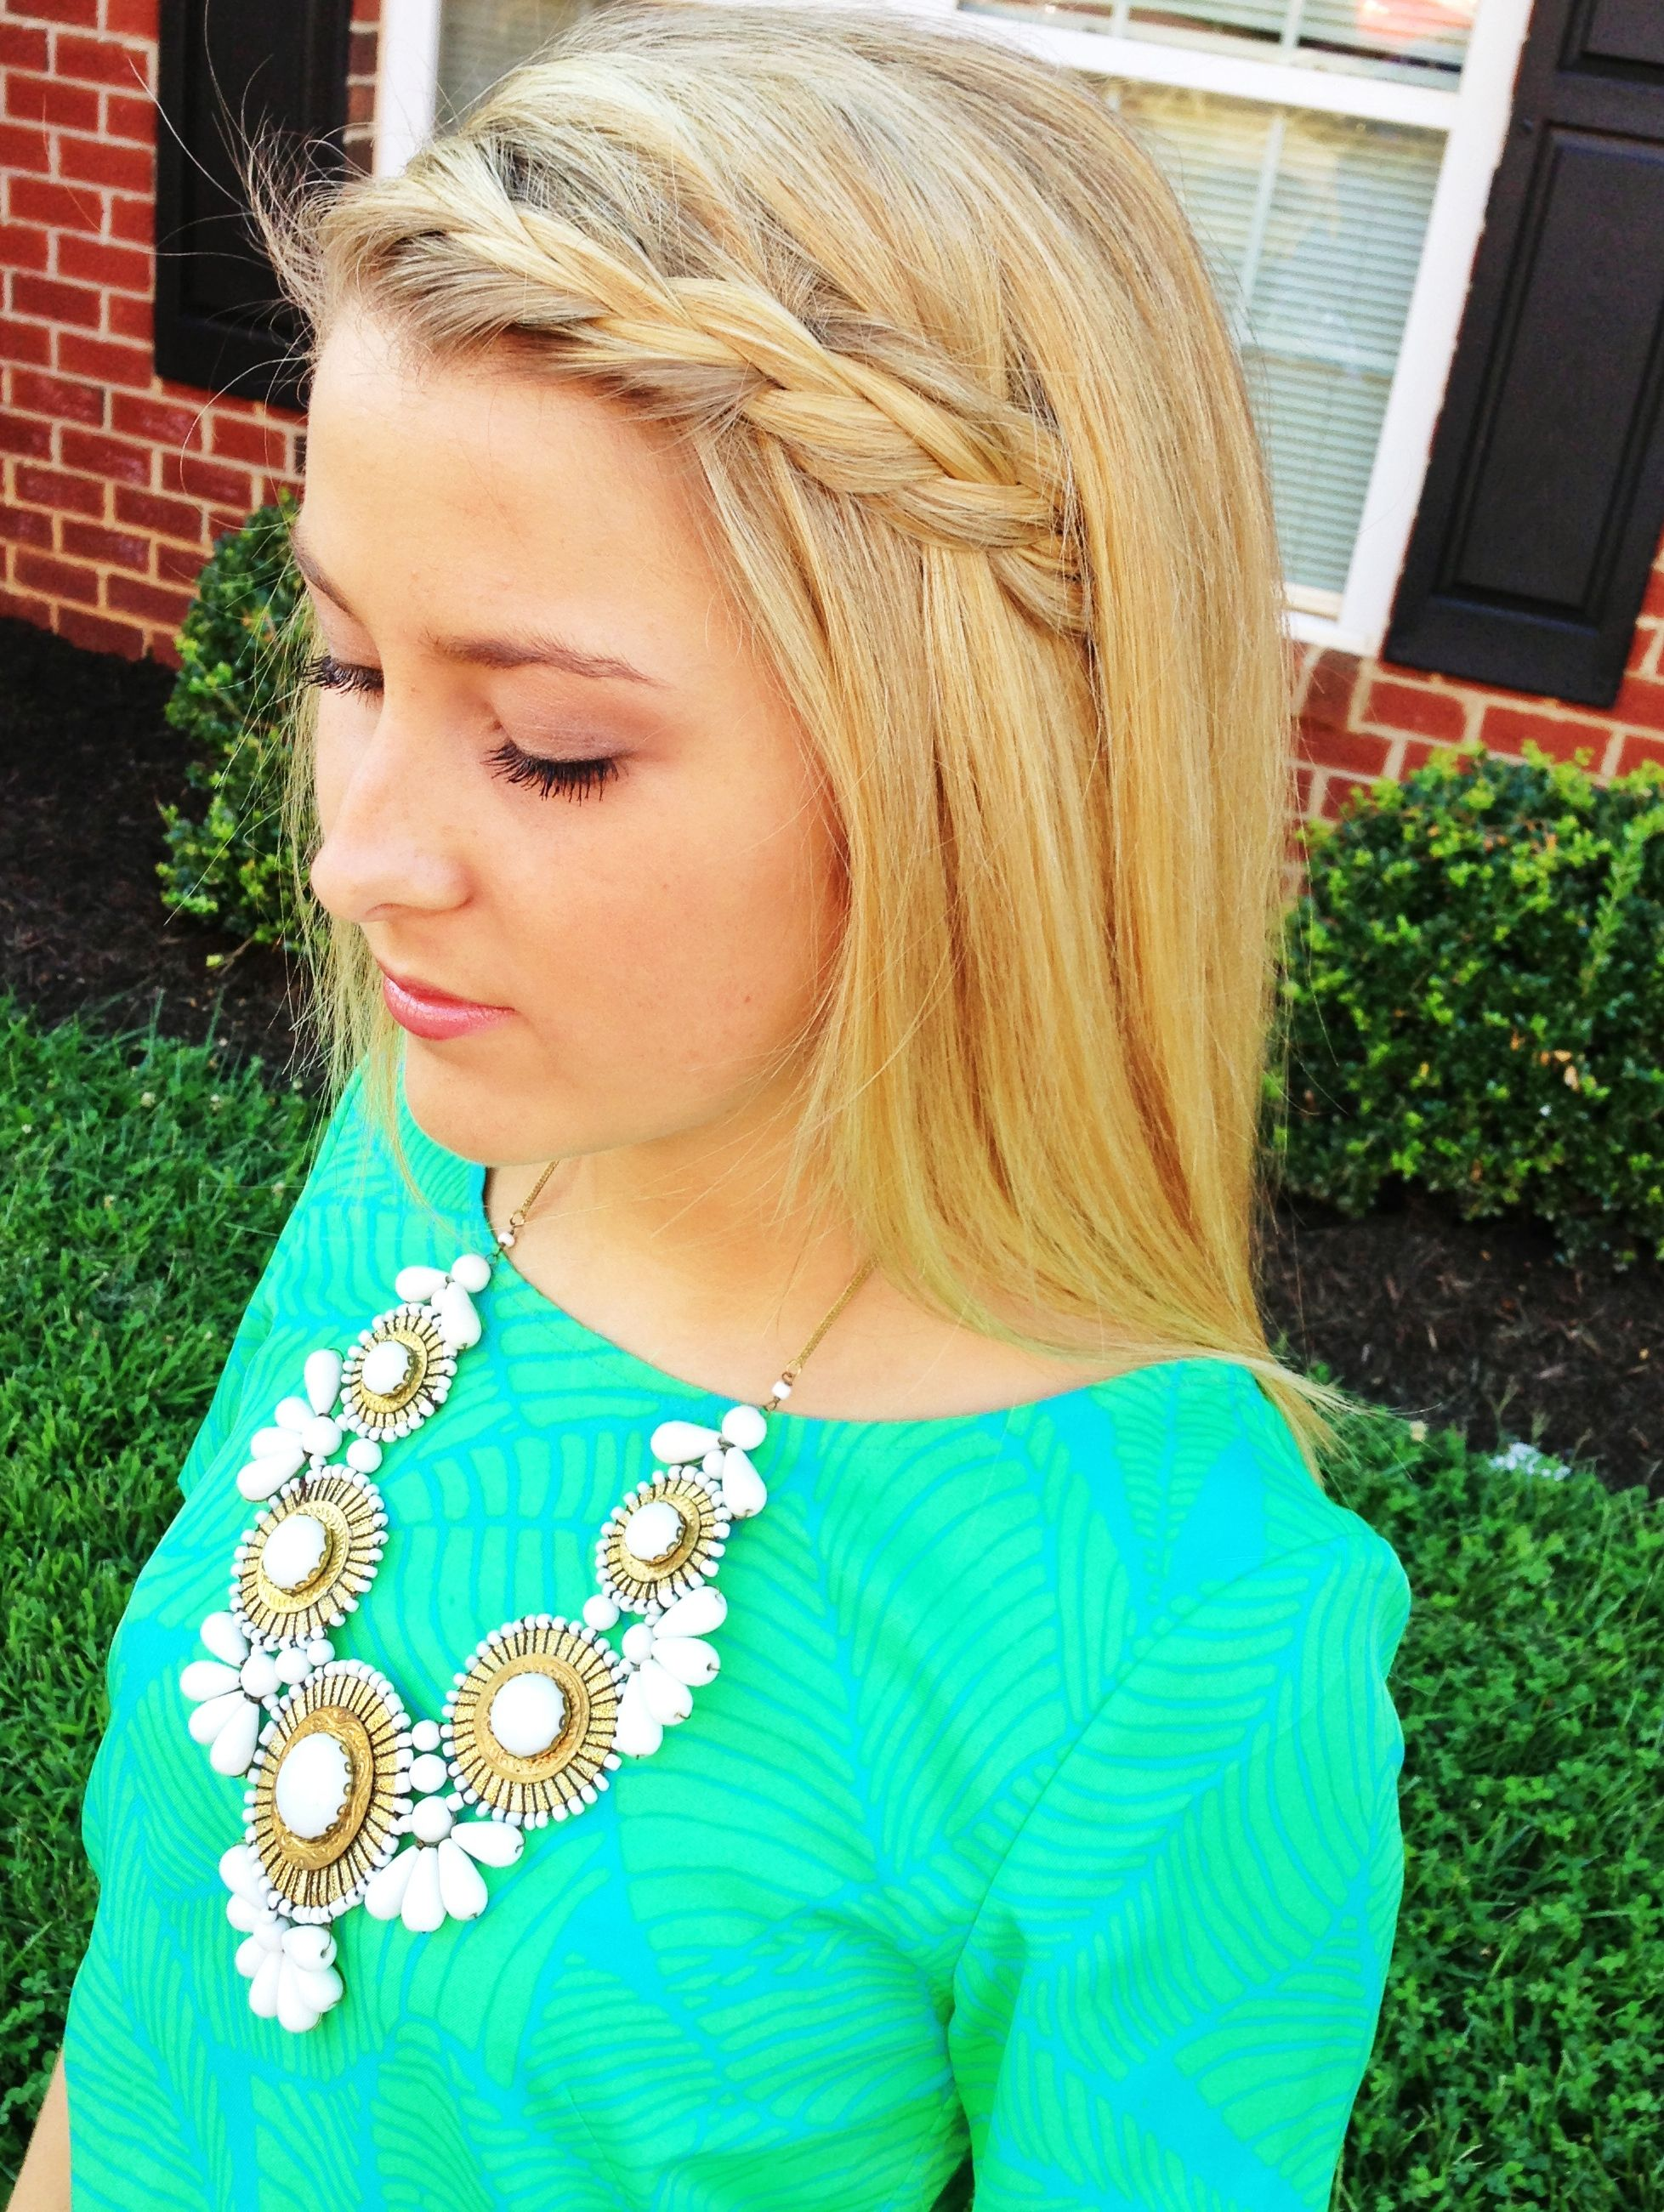 hannahshanae~ she's perfect. love the shirt and necklace